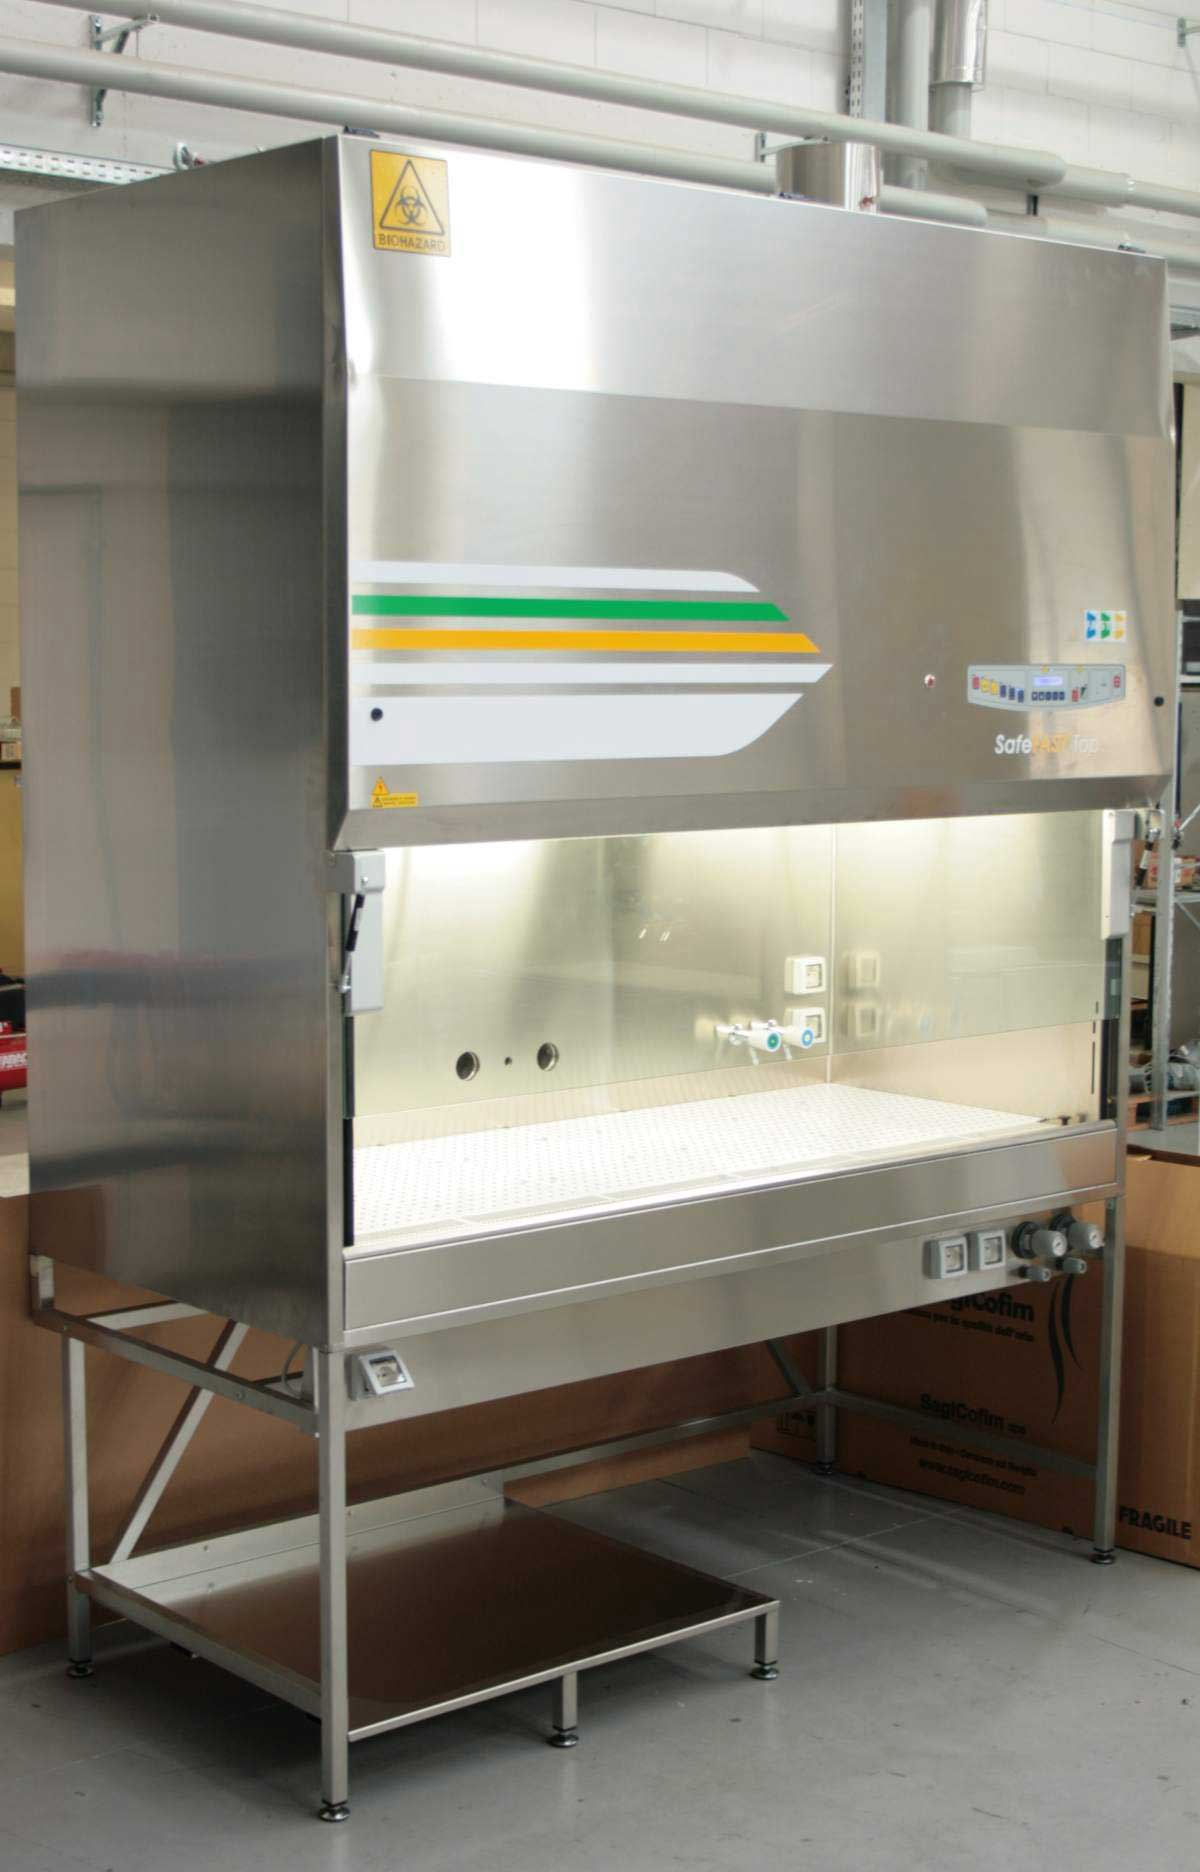 Microbiological safety cabinet ATEX version